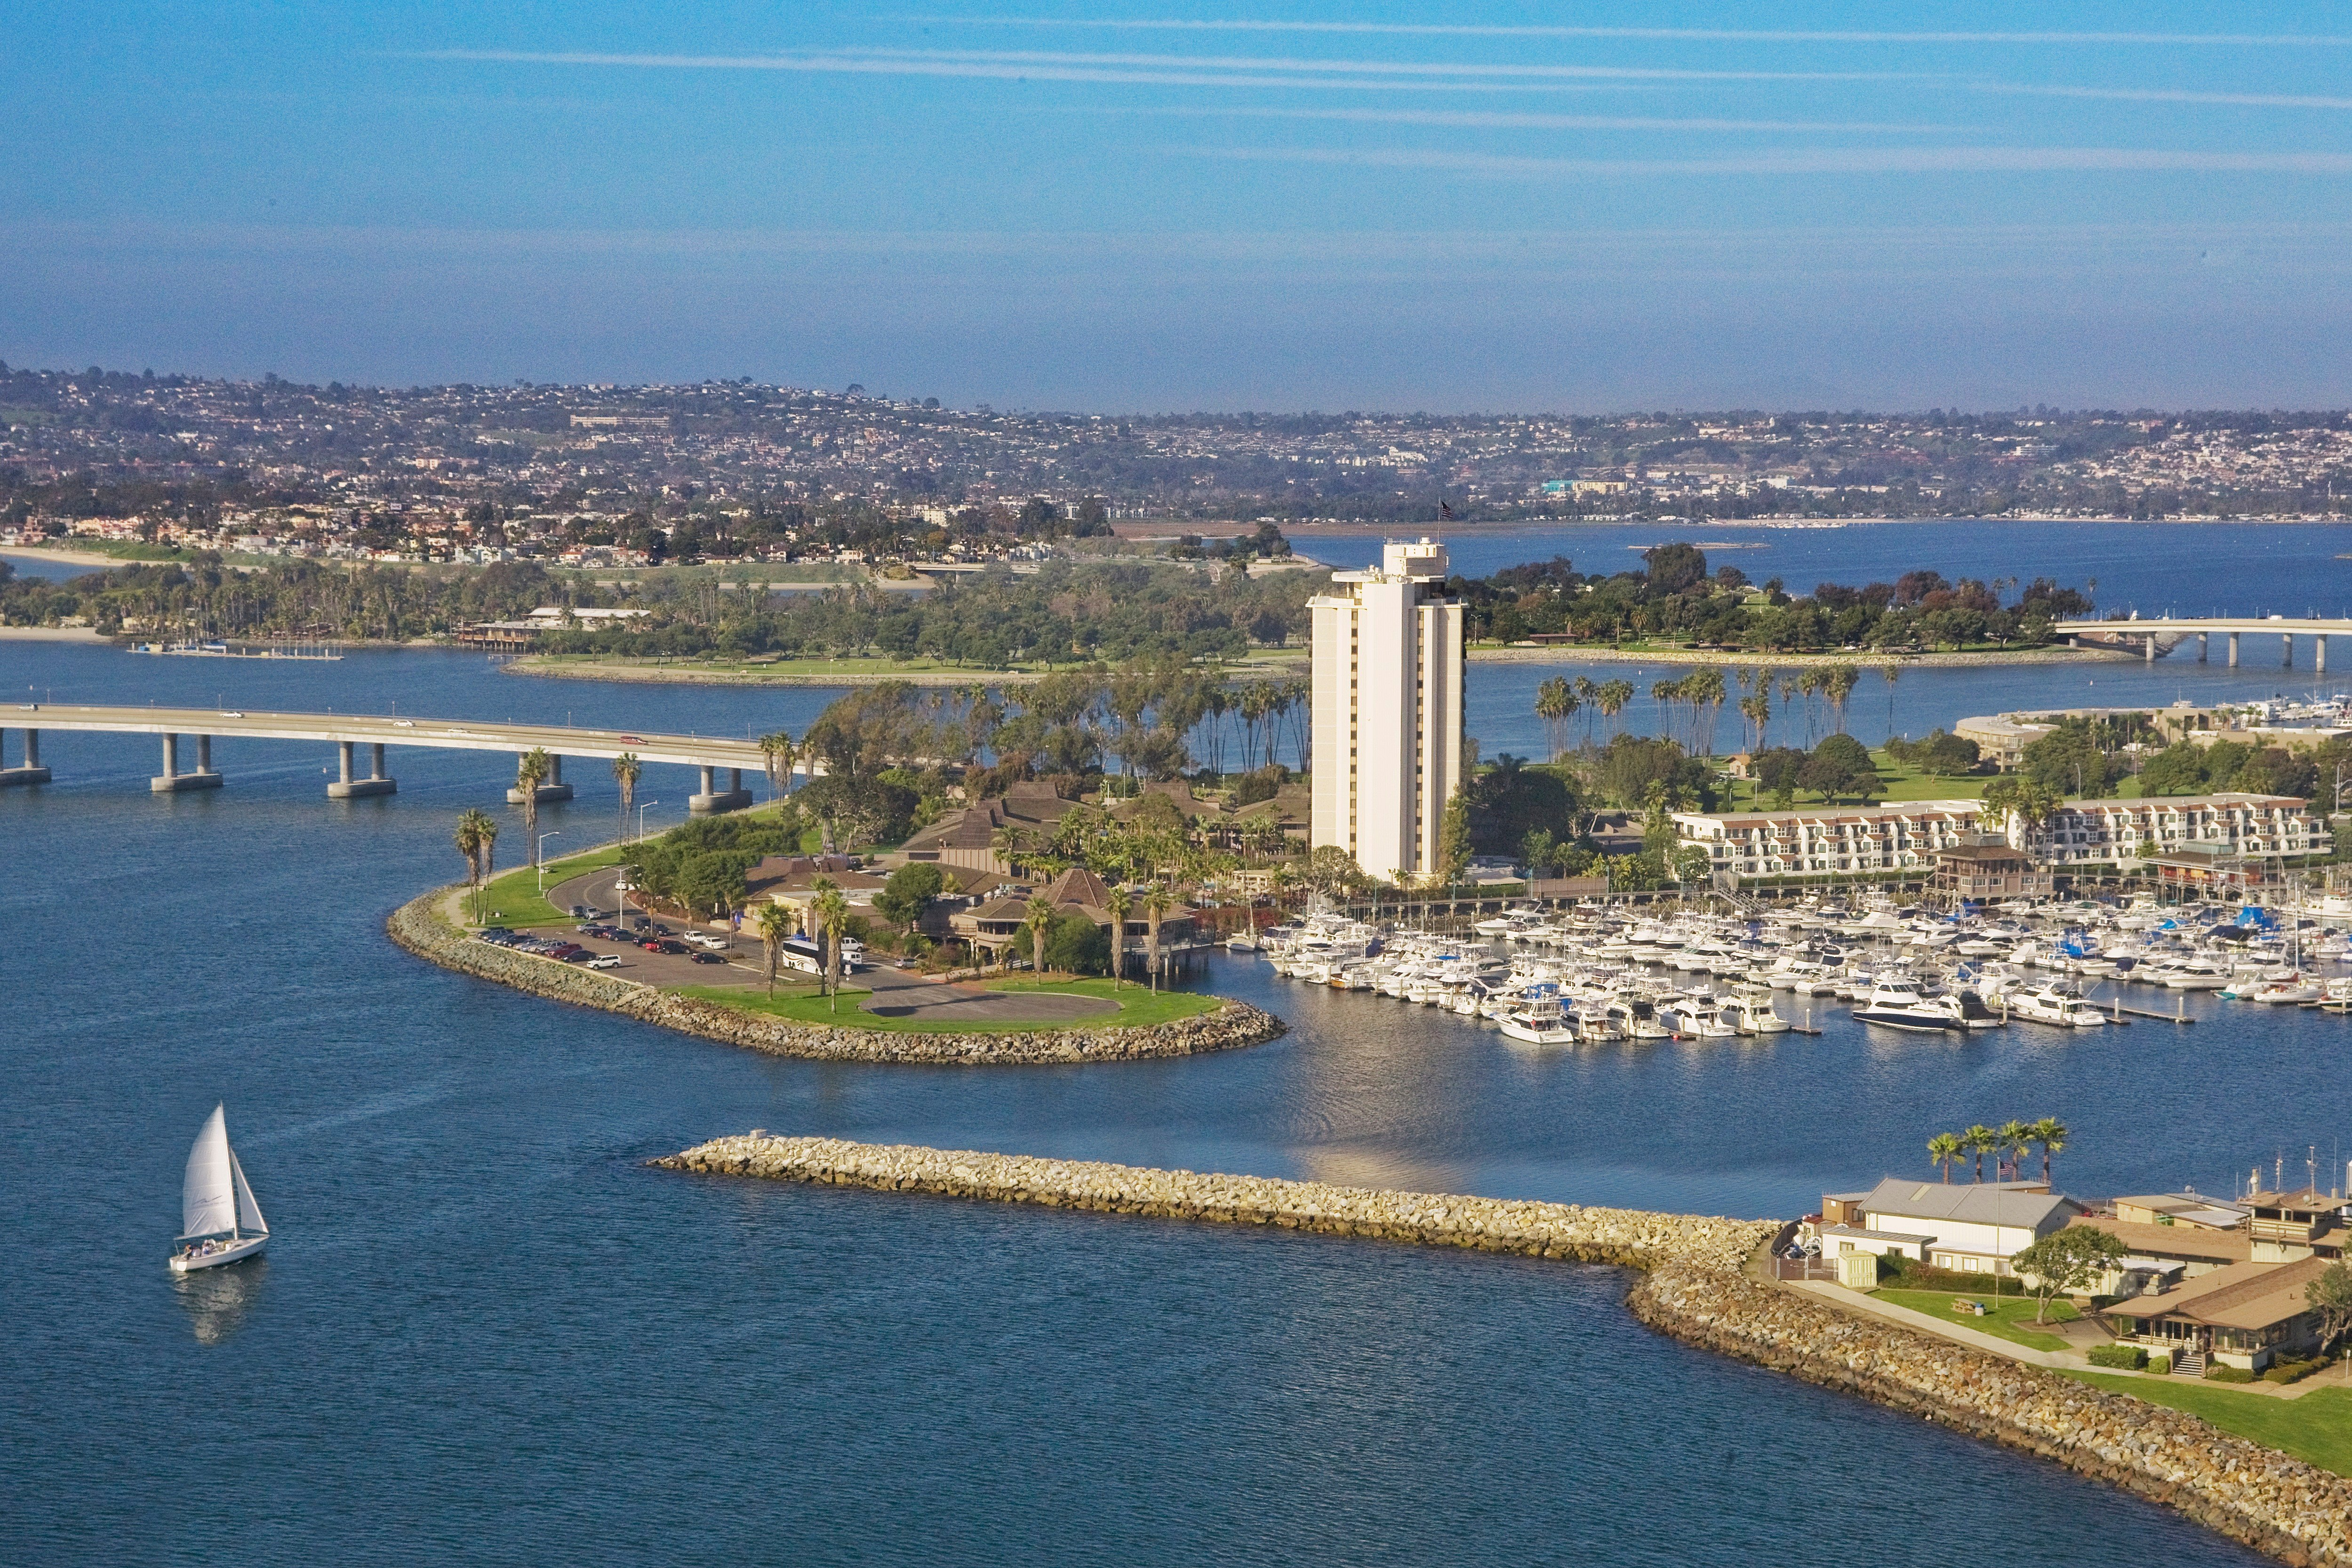 Review Hyatt Regency Mission Bay Spa and Marina in San Diego